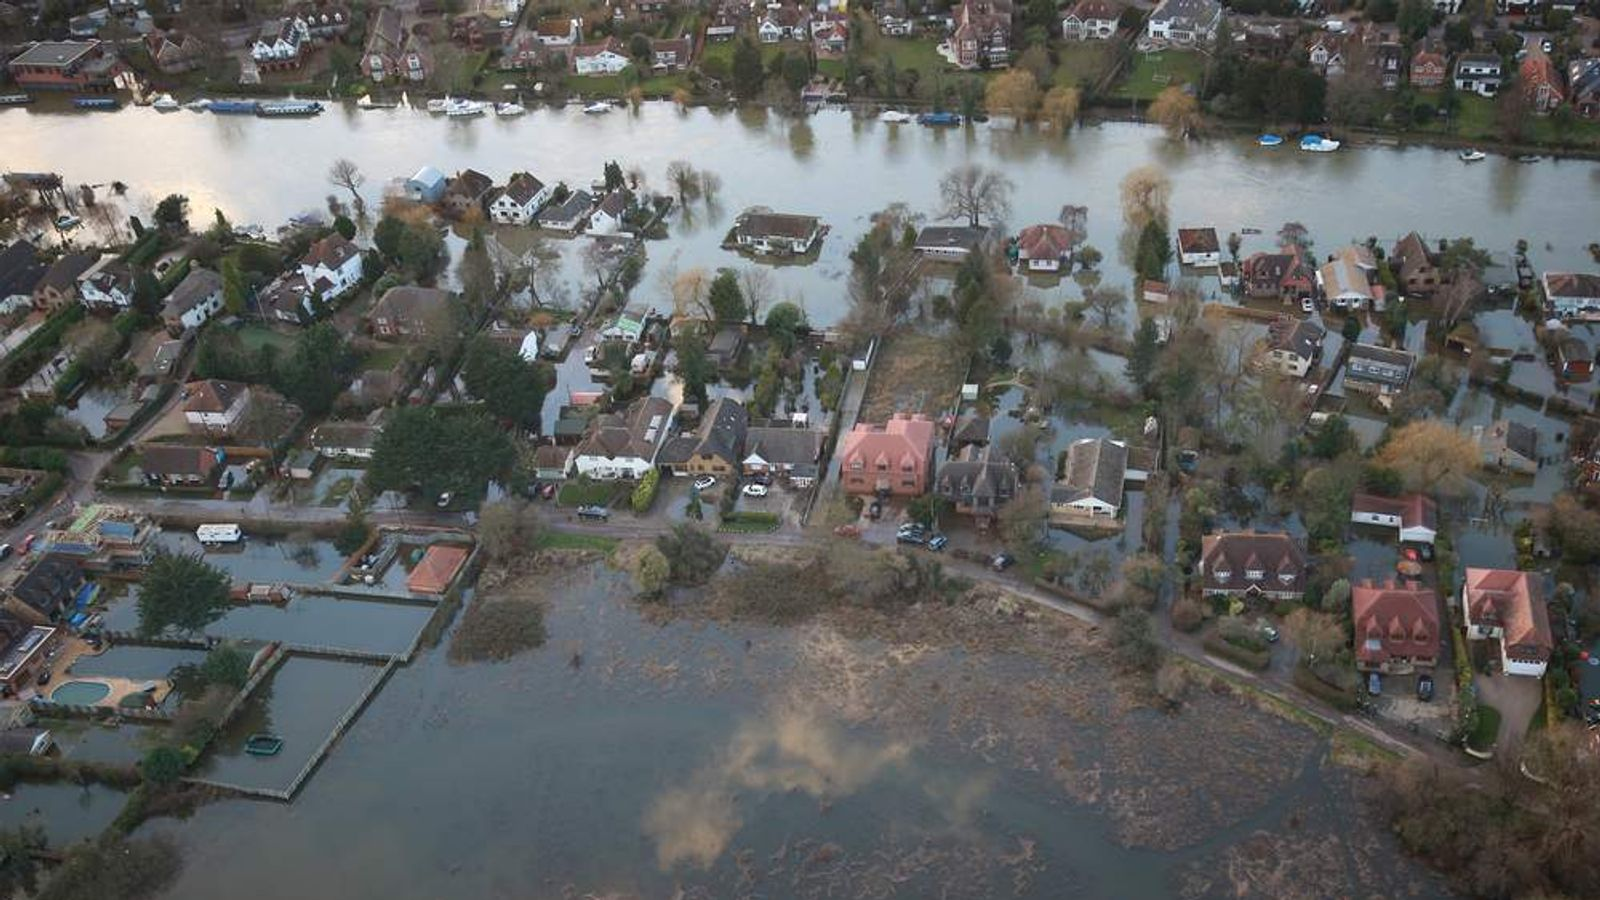 Floodwaters in UK after winter storms